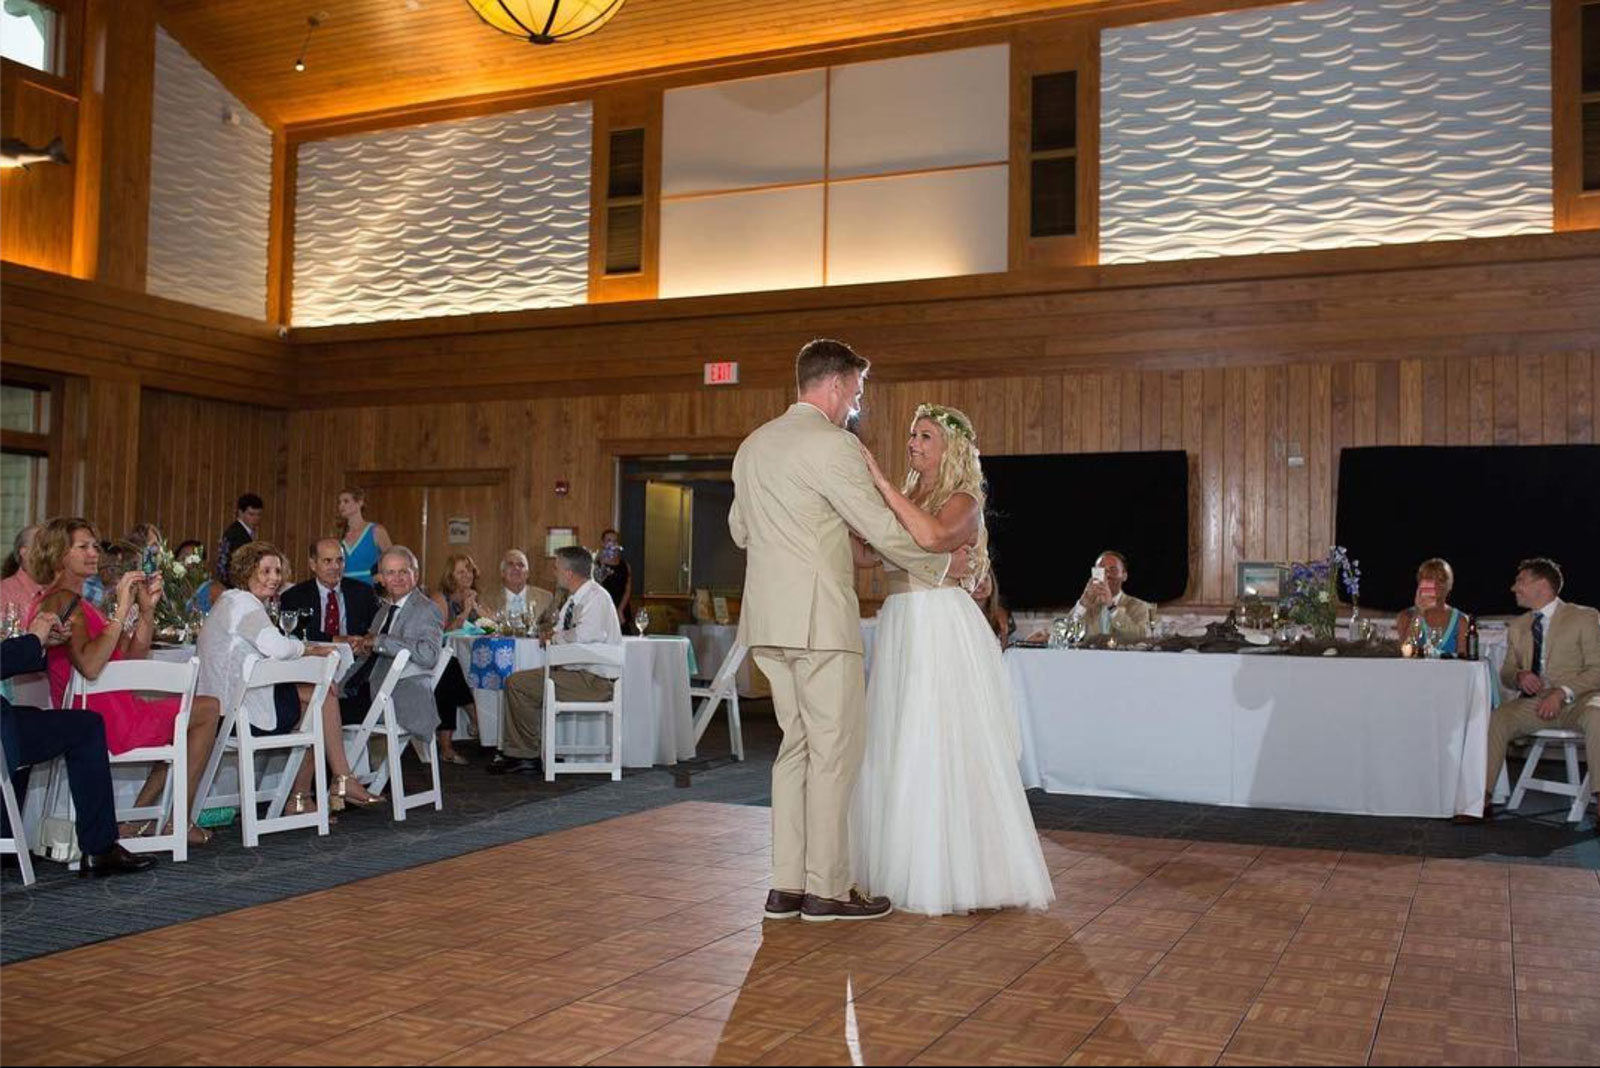 Oak style portable wedding dance floor inside a building